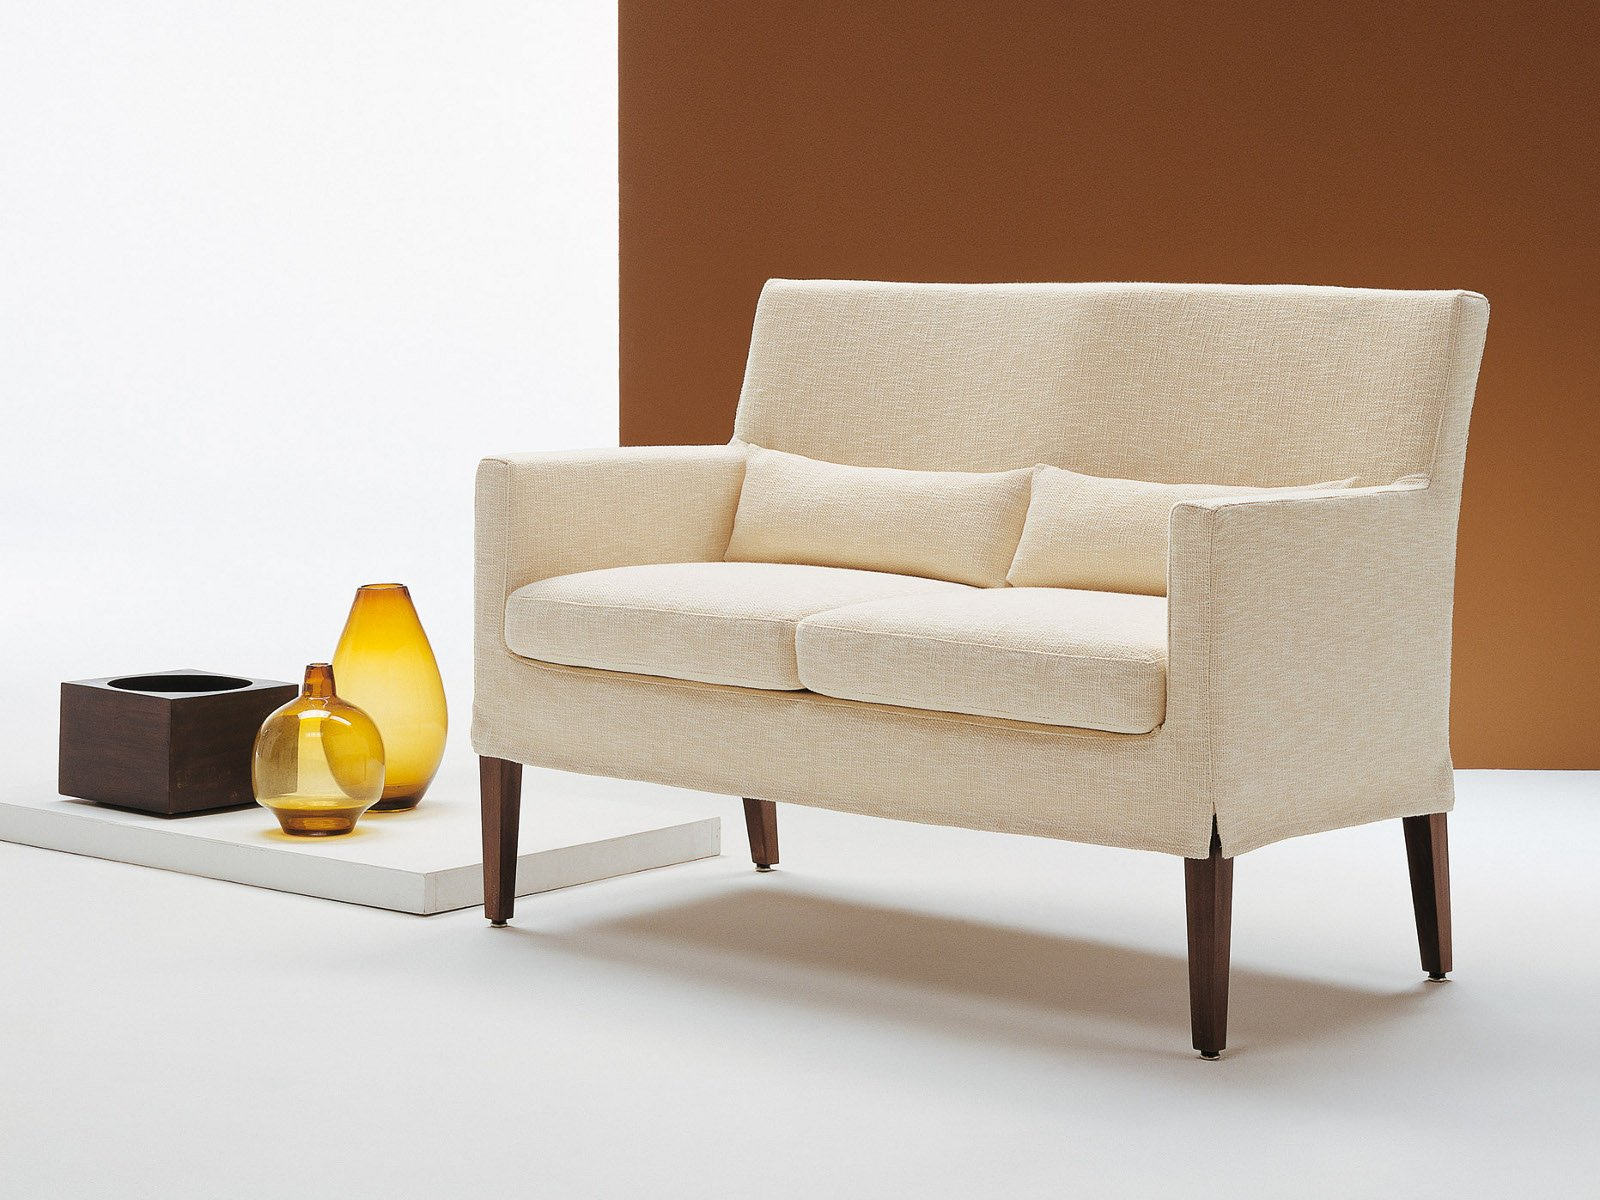 Betty small sofa by bodema design danilo bonfanti for Sofas de 4 plazas baratos